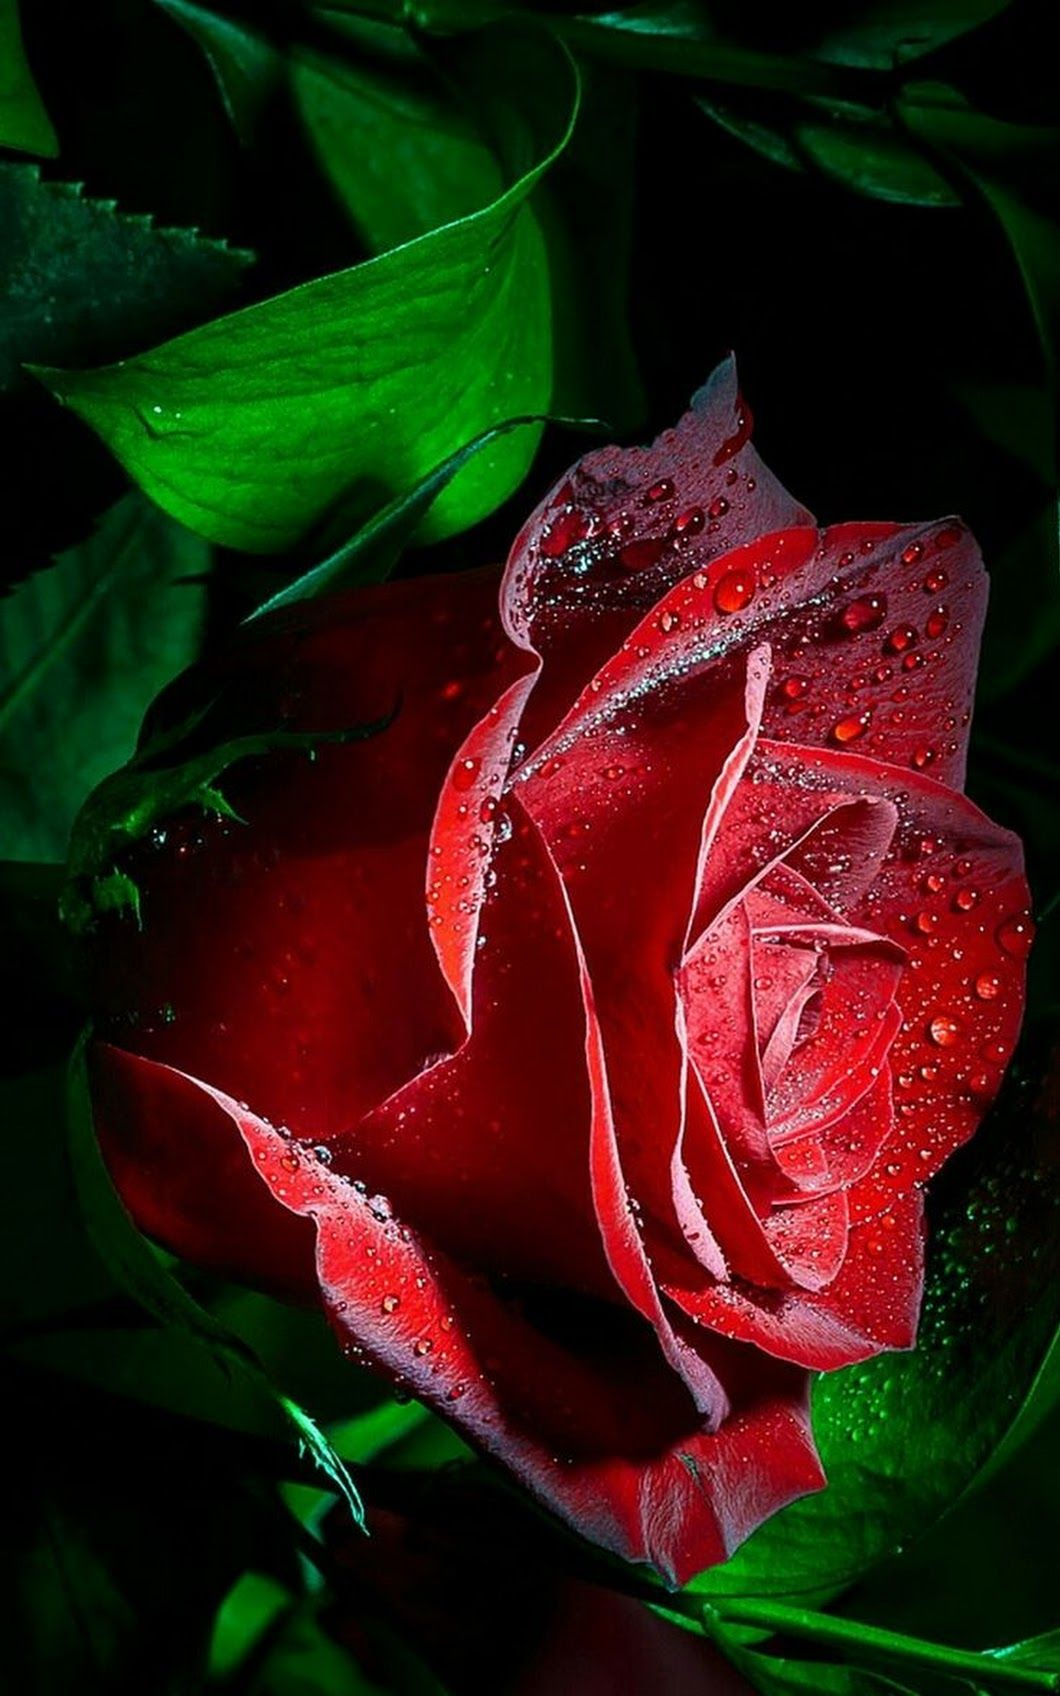 a red flower pinterest flowers beautiful flowers roses are red purple flowers pretty flowers very beautiful flowers beautiful izmirmasajfo